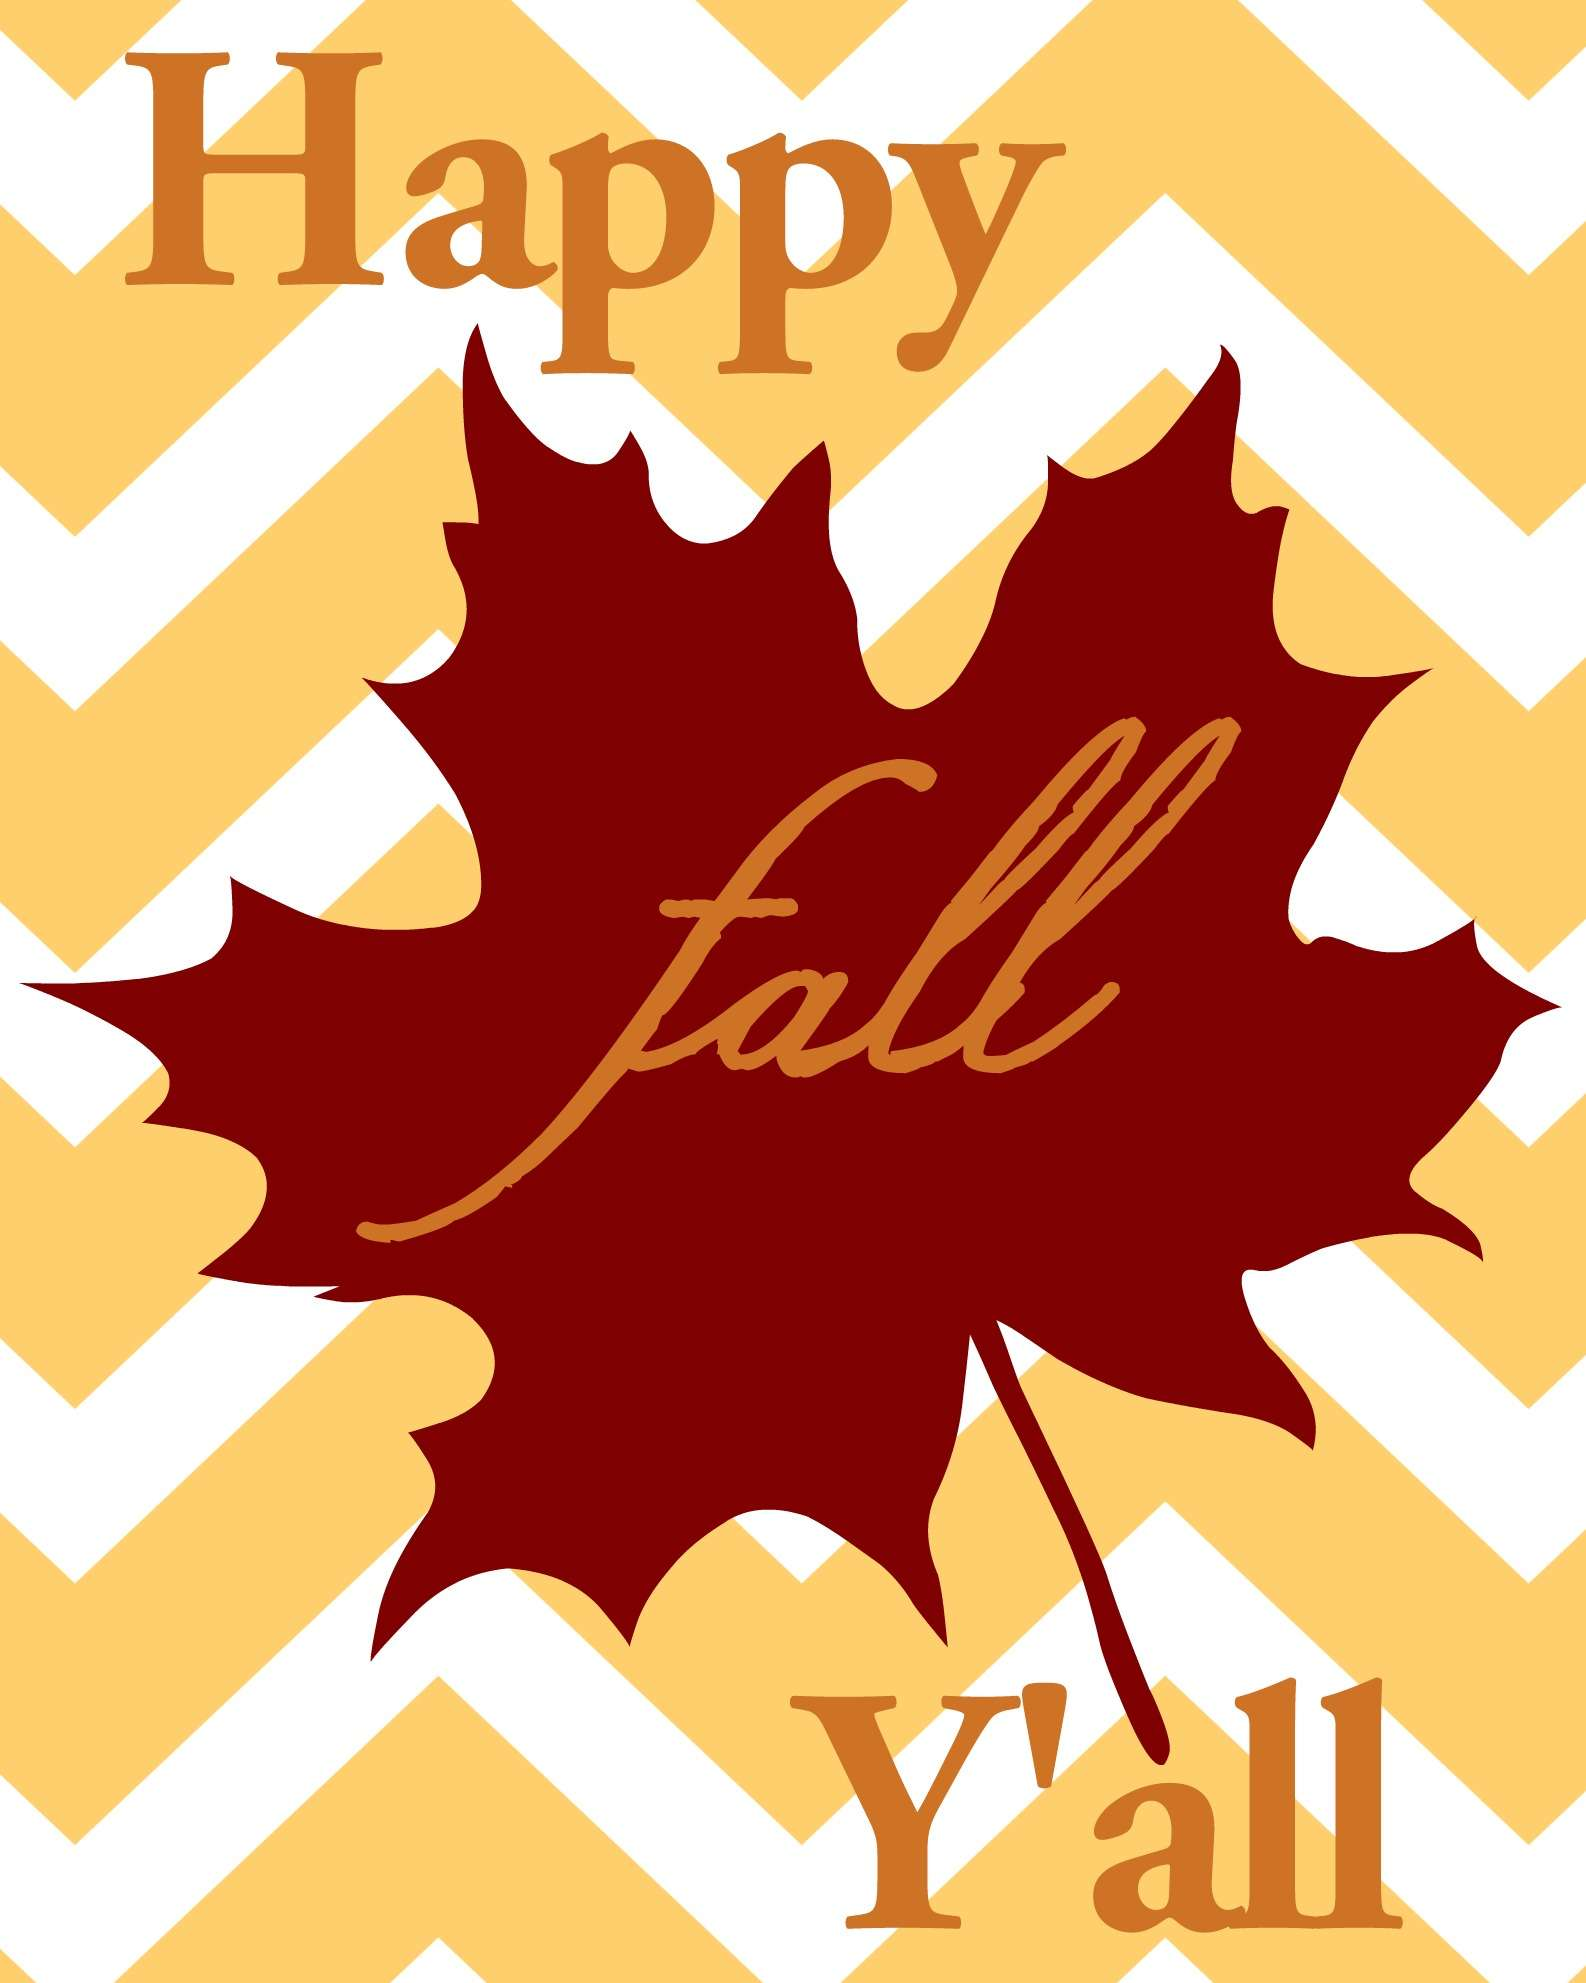 photo regarding Happy Fall Yall Printable titled Free of charge \